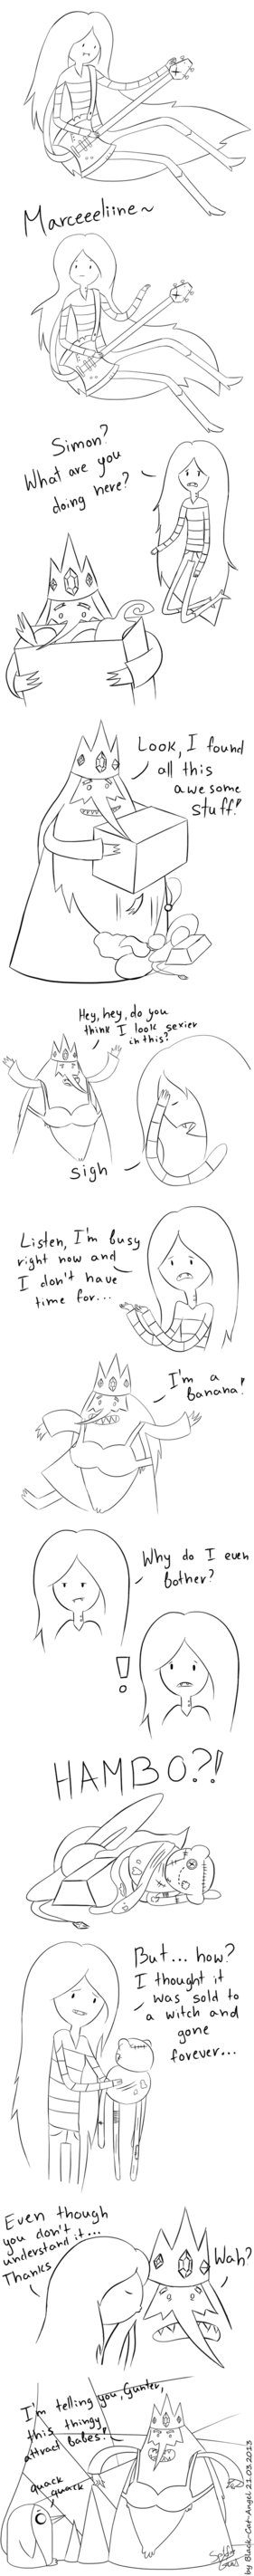 Funny Marceline and Ice King Comic Strip. xD